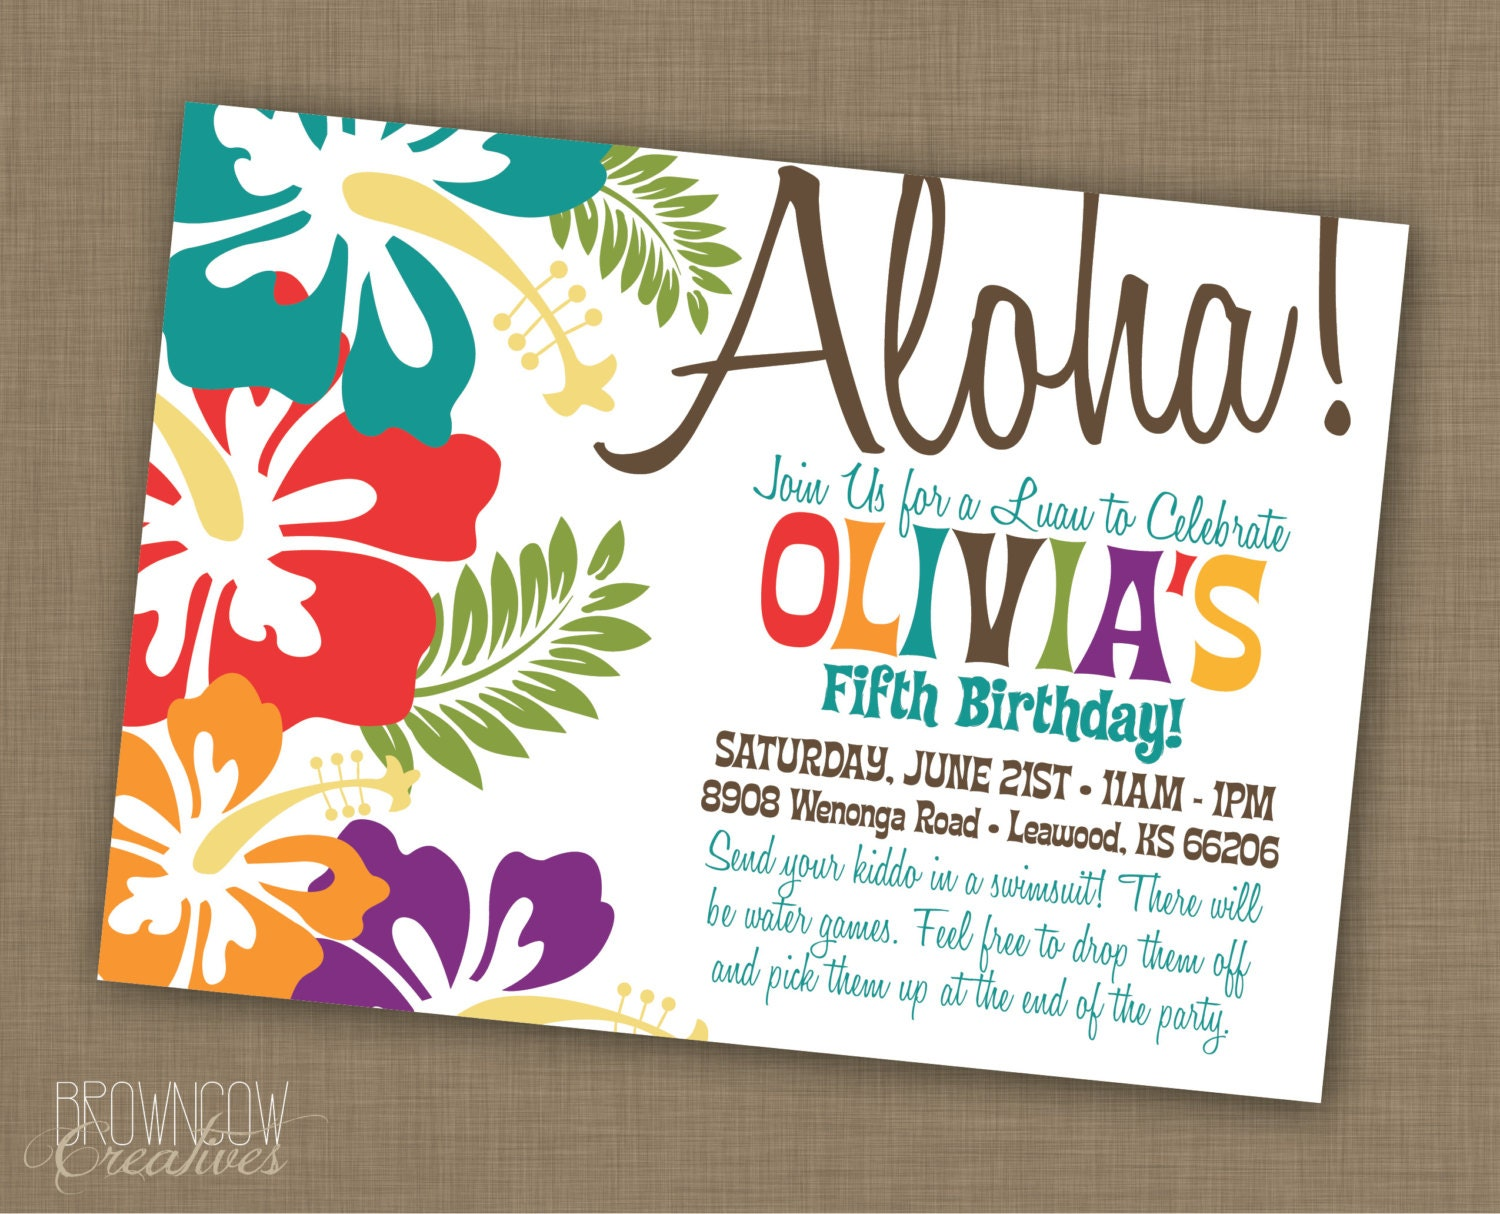 Challenger image intended for hawaiian theme party invitations printable